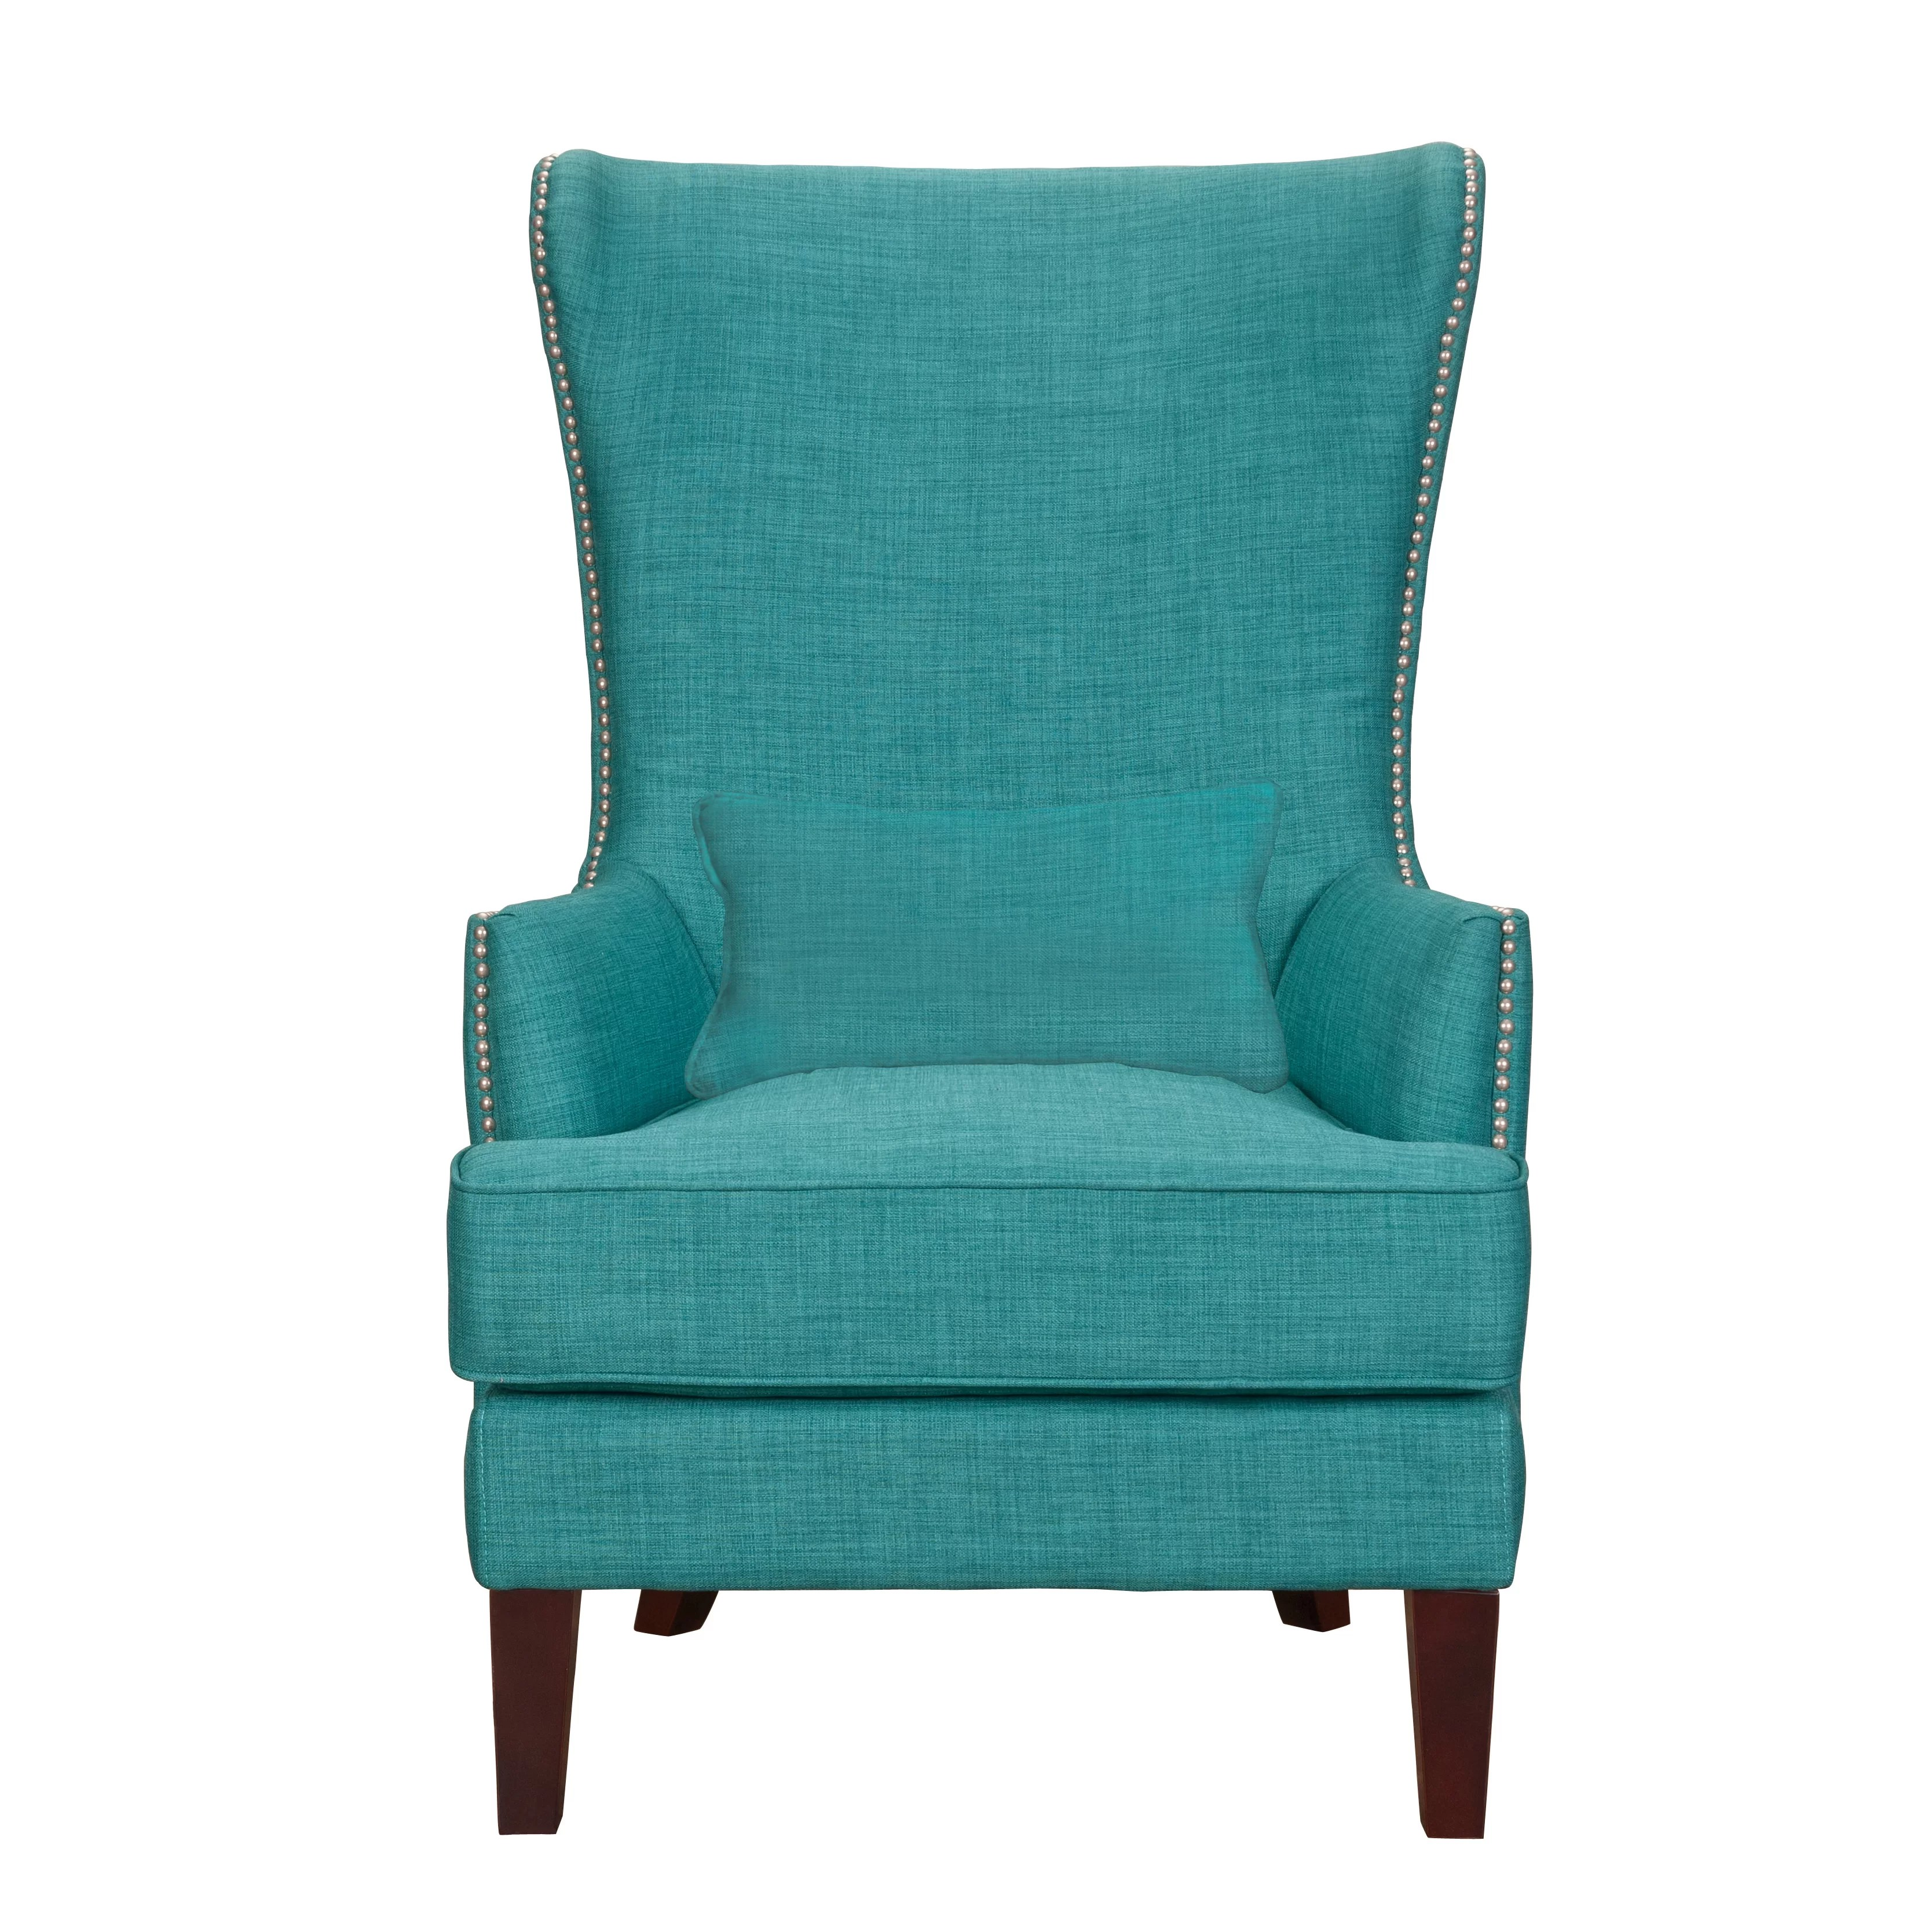 Teal Wingback Chair Cavender Wingback Chair